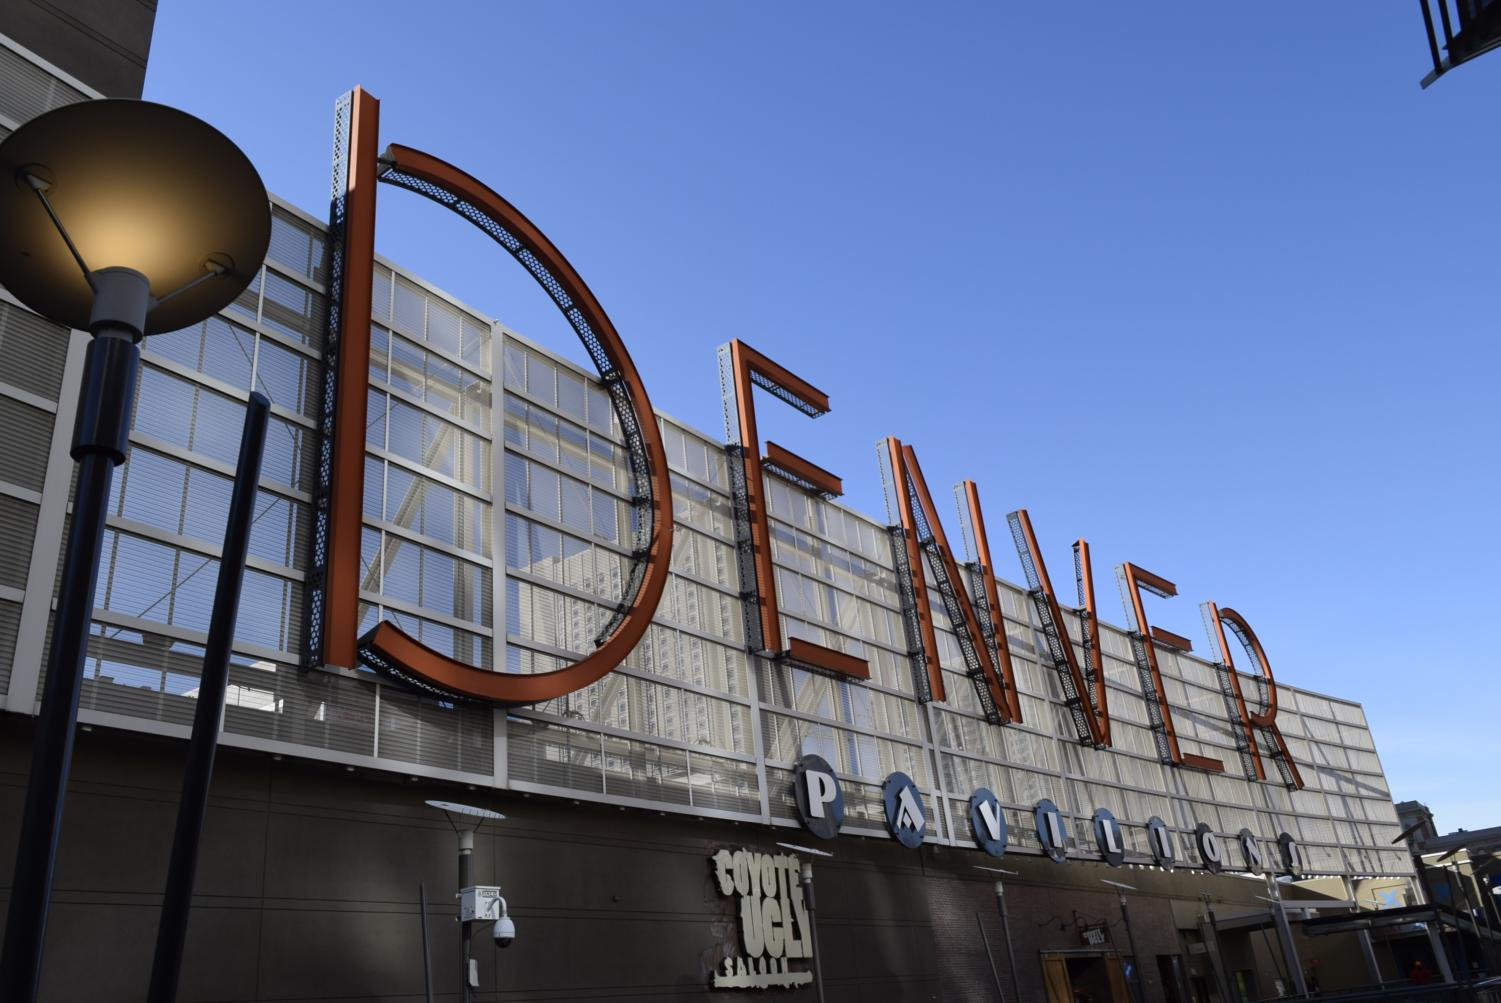 Denver Pavilions on the 16th Street Mall, Tuesday, Jan. 19, 2016.